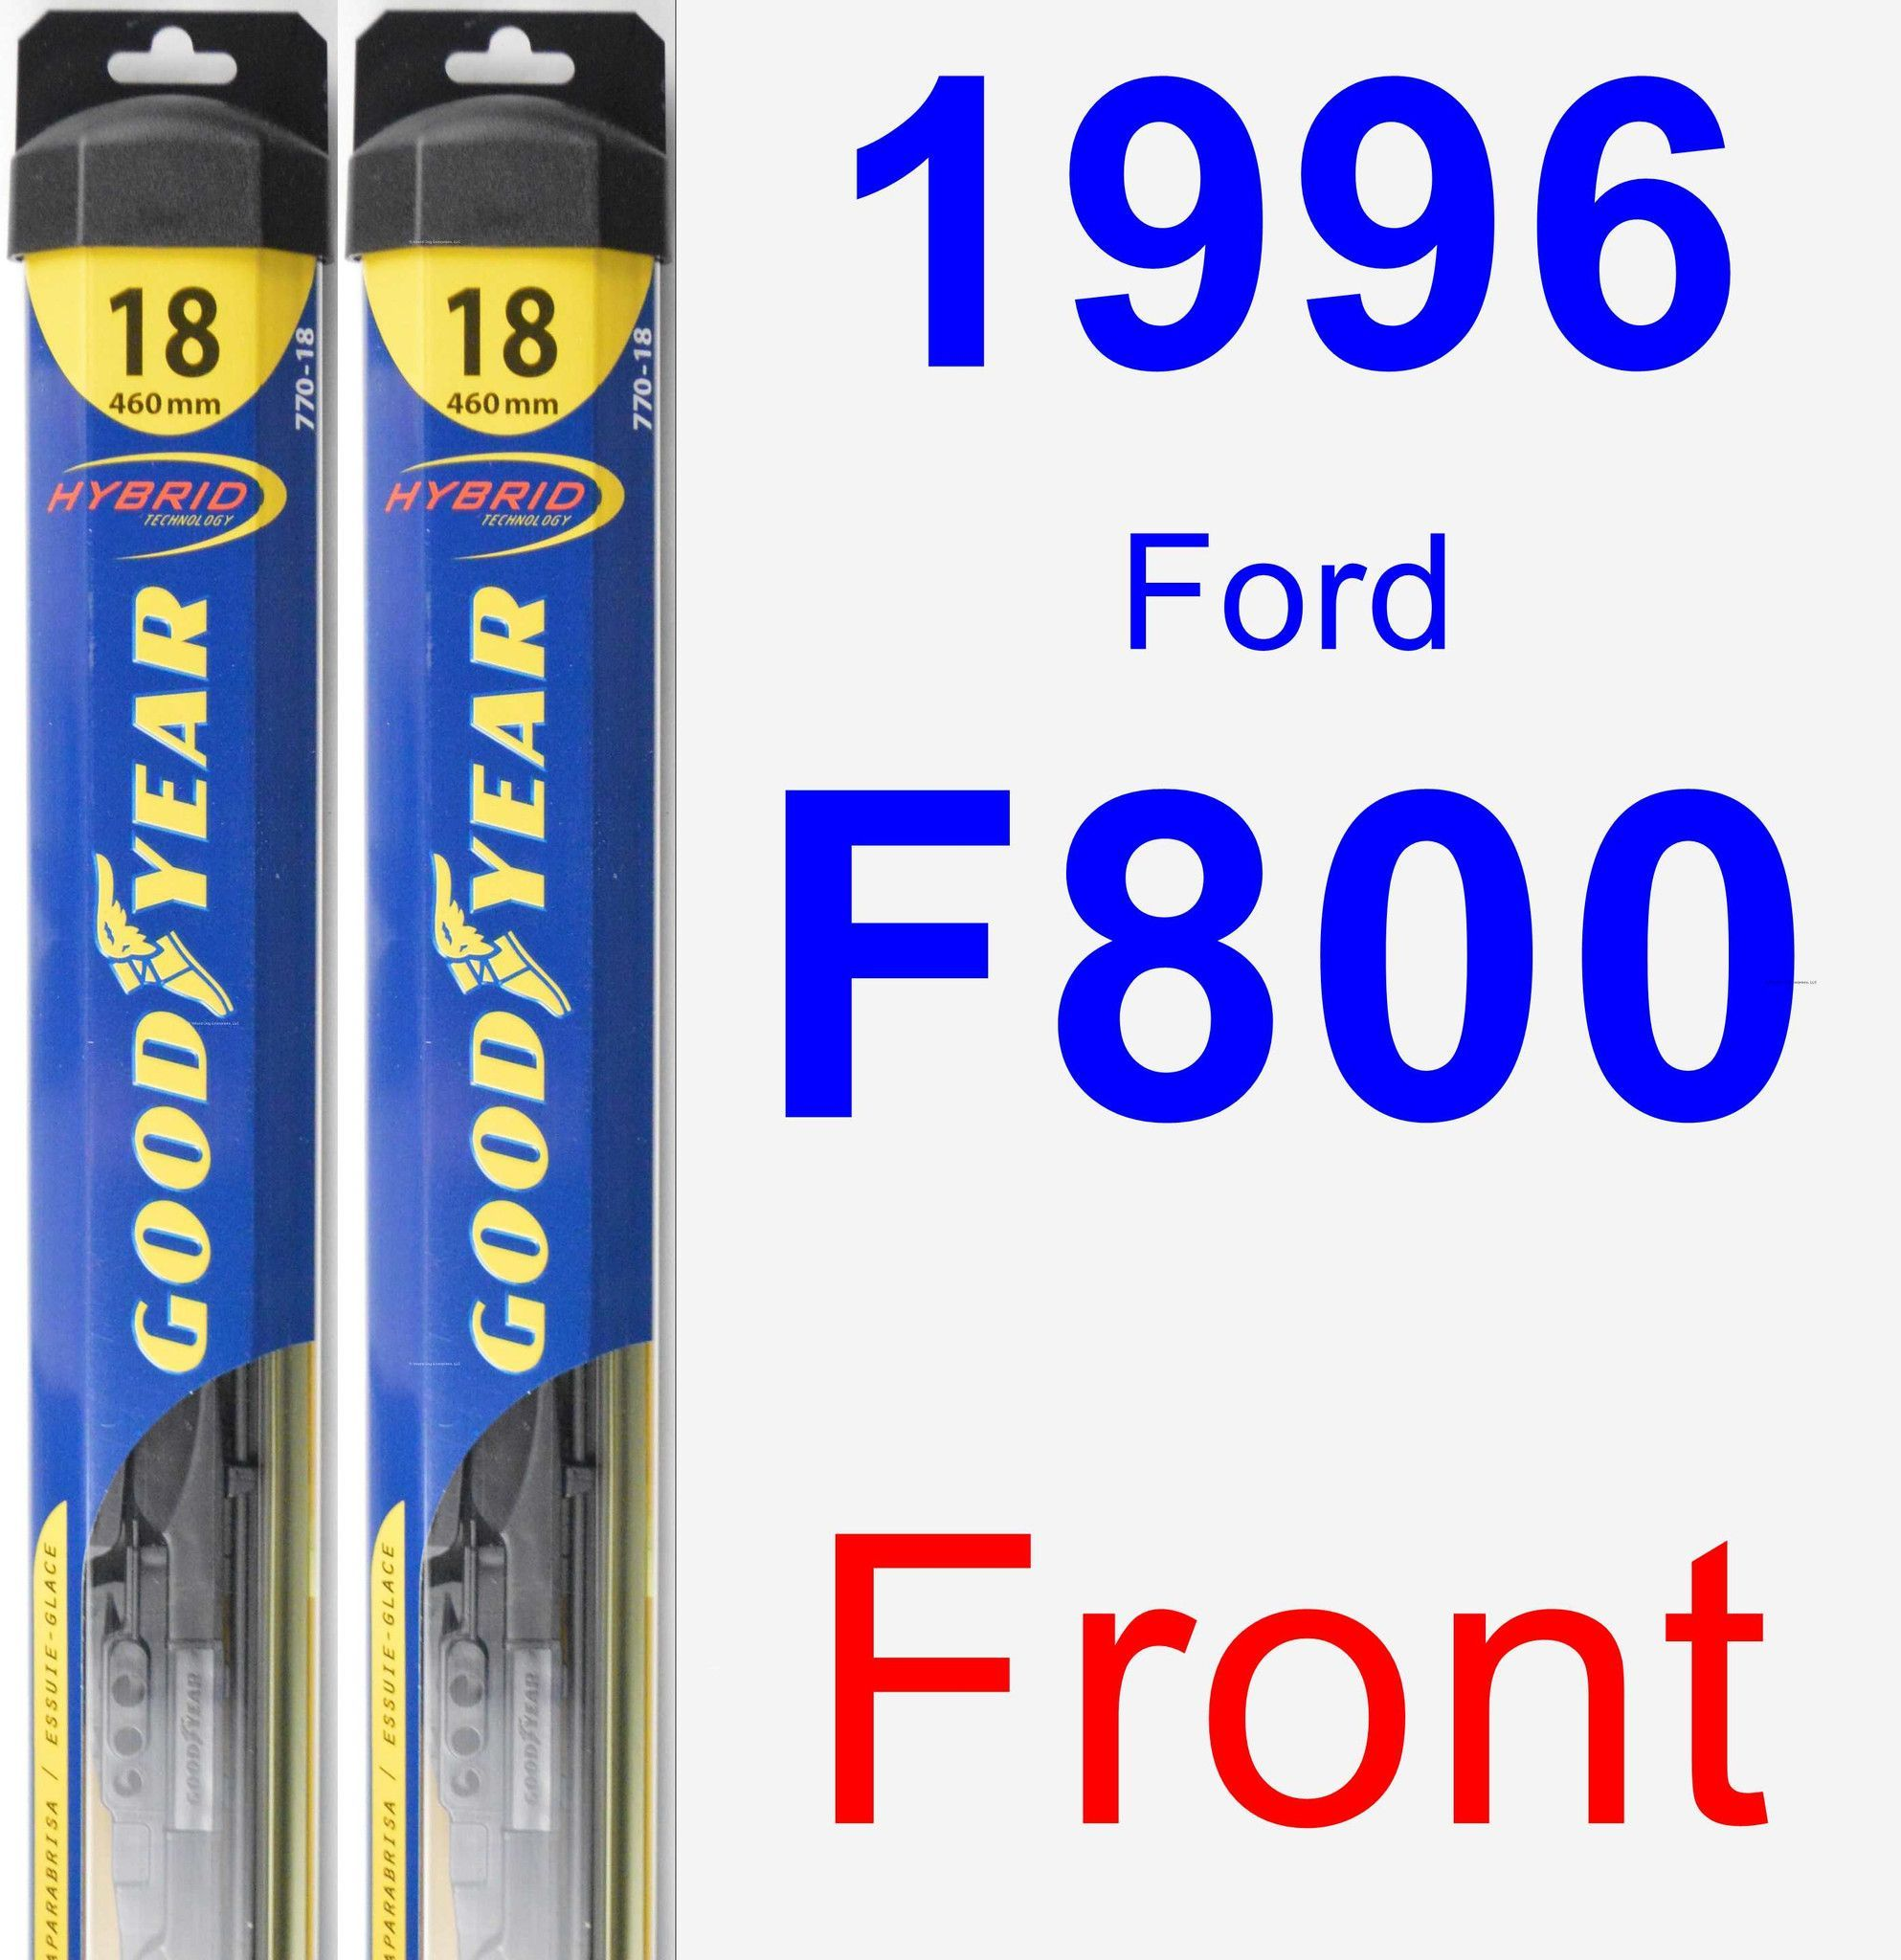 Front Wiper Blade Pack for 1996 Ford F800 - Hybrid